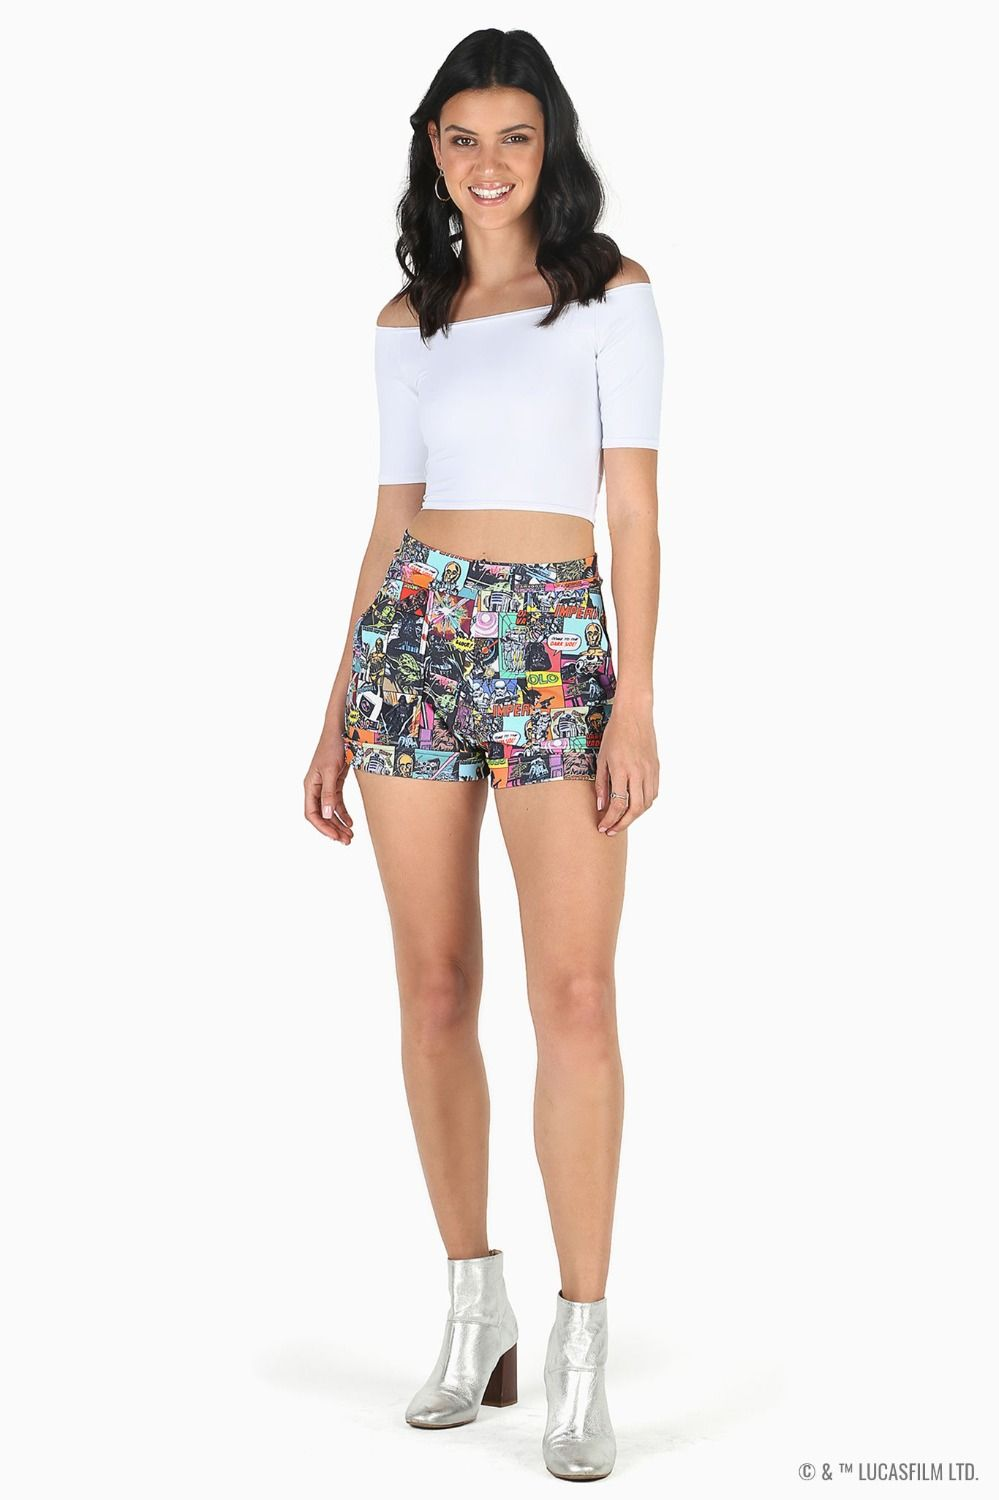 Black Milk Clothing x Star Wars Comic Cuffed Shorts